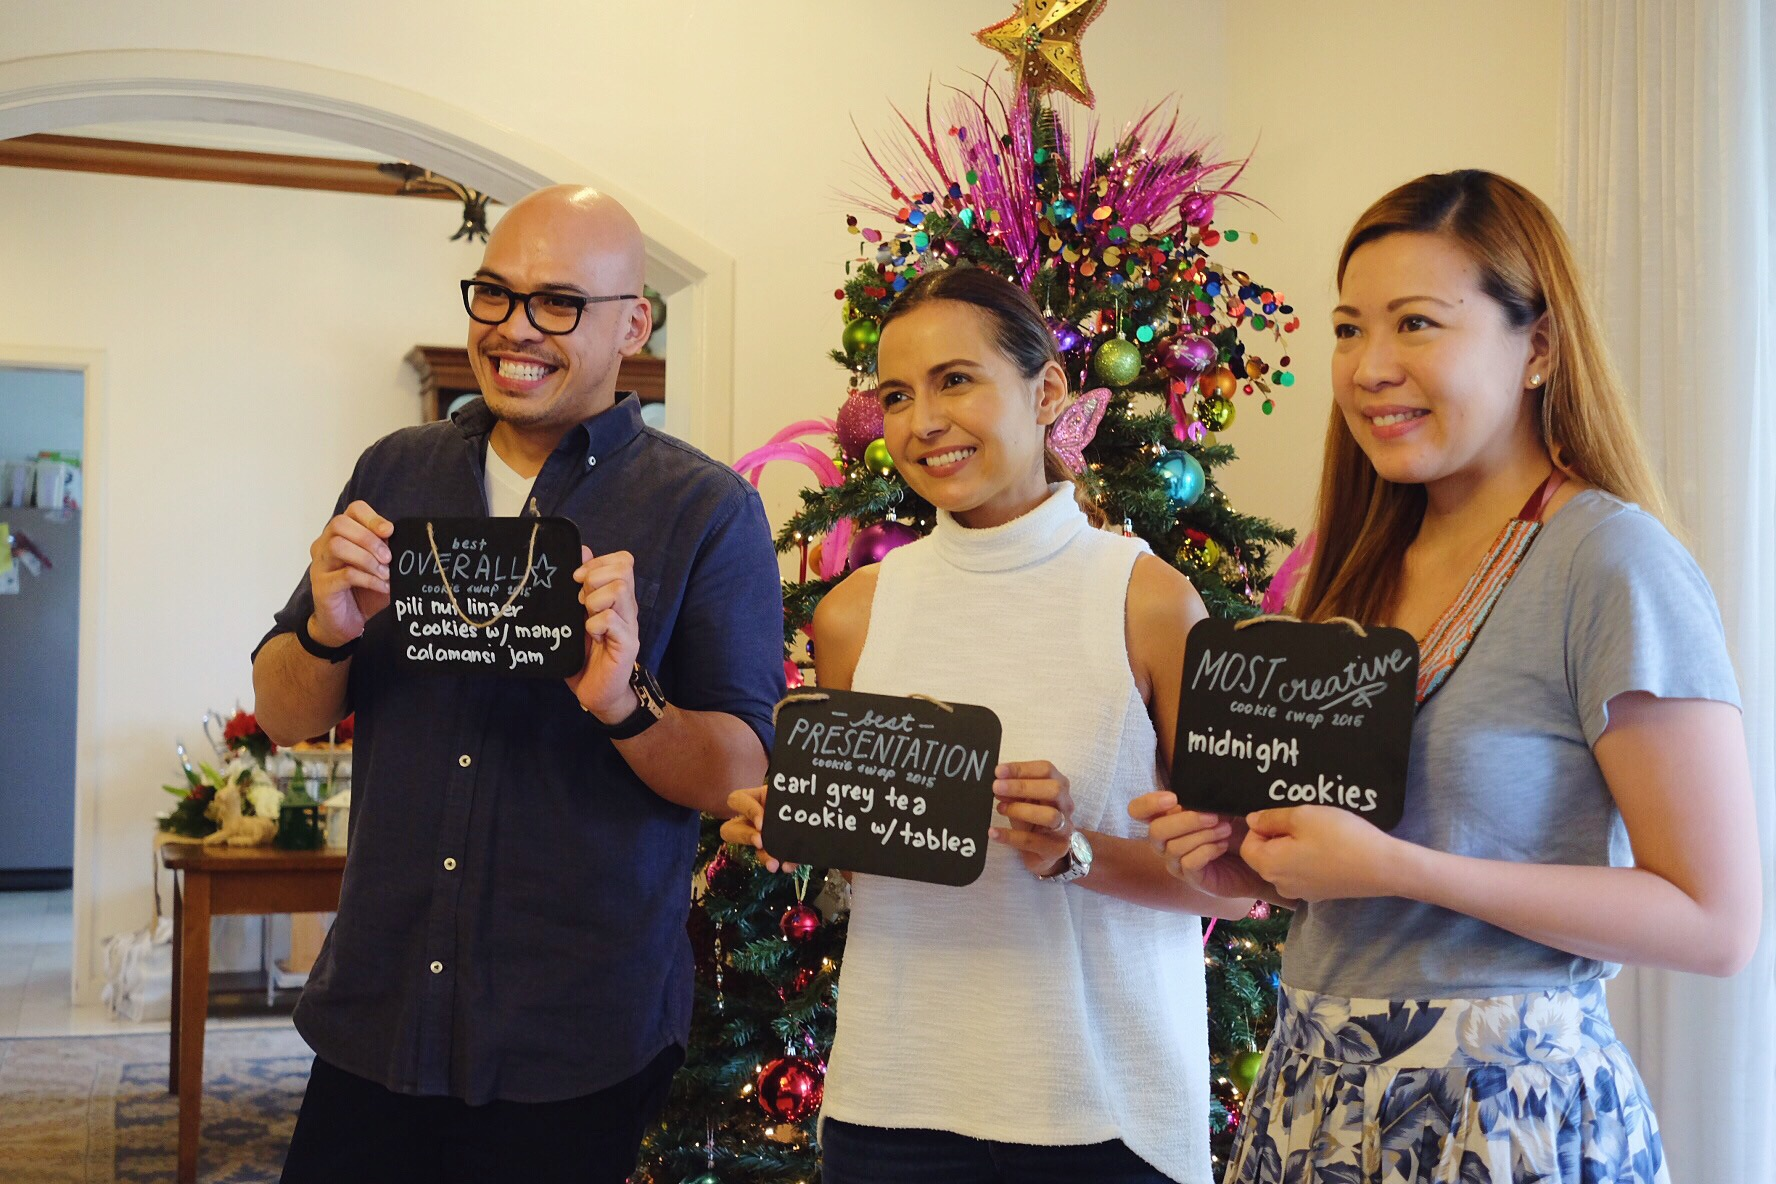 We were in great hands with our judges: Cy, Cat and Joei. -